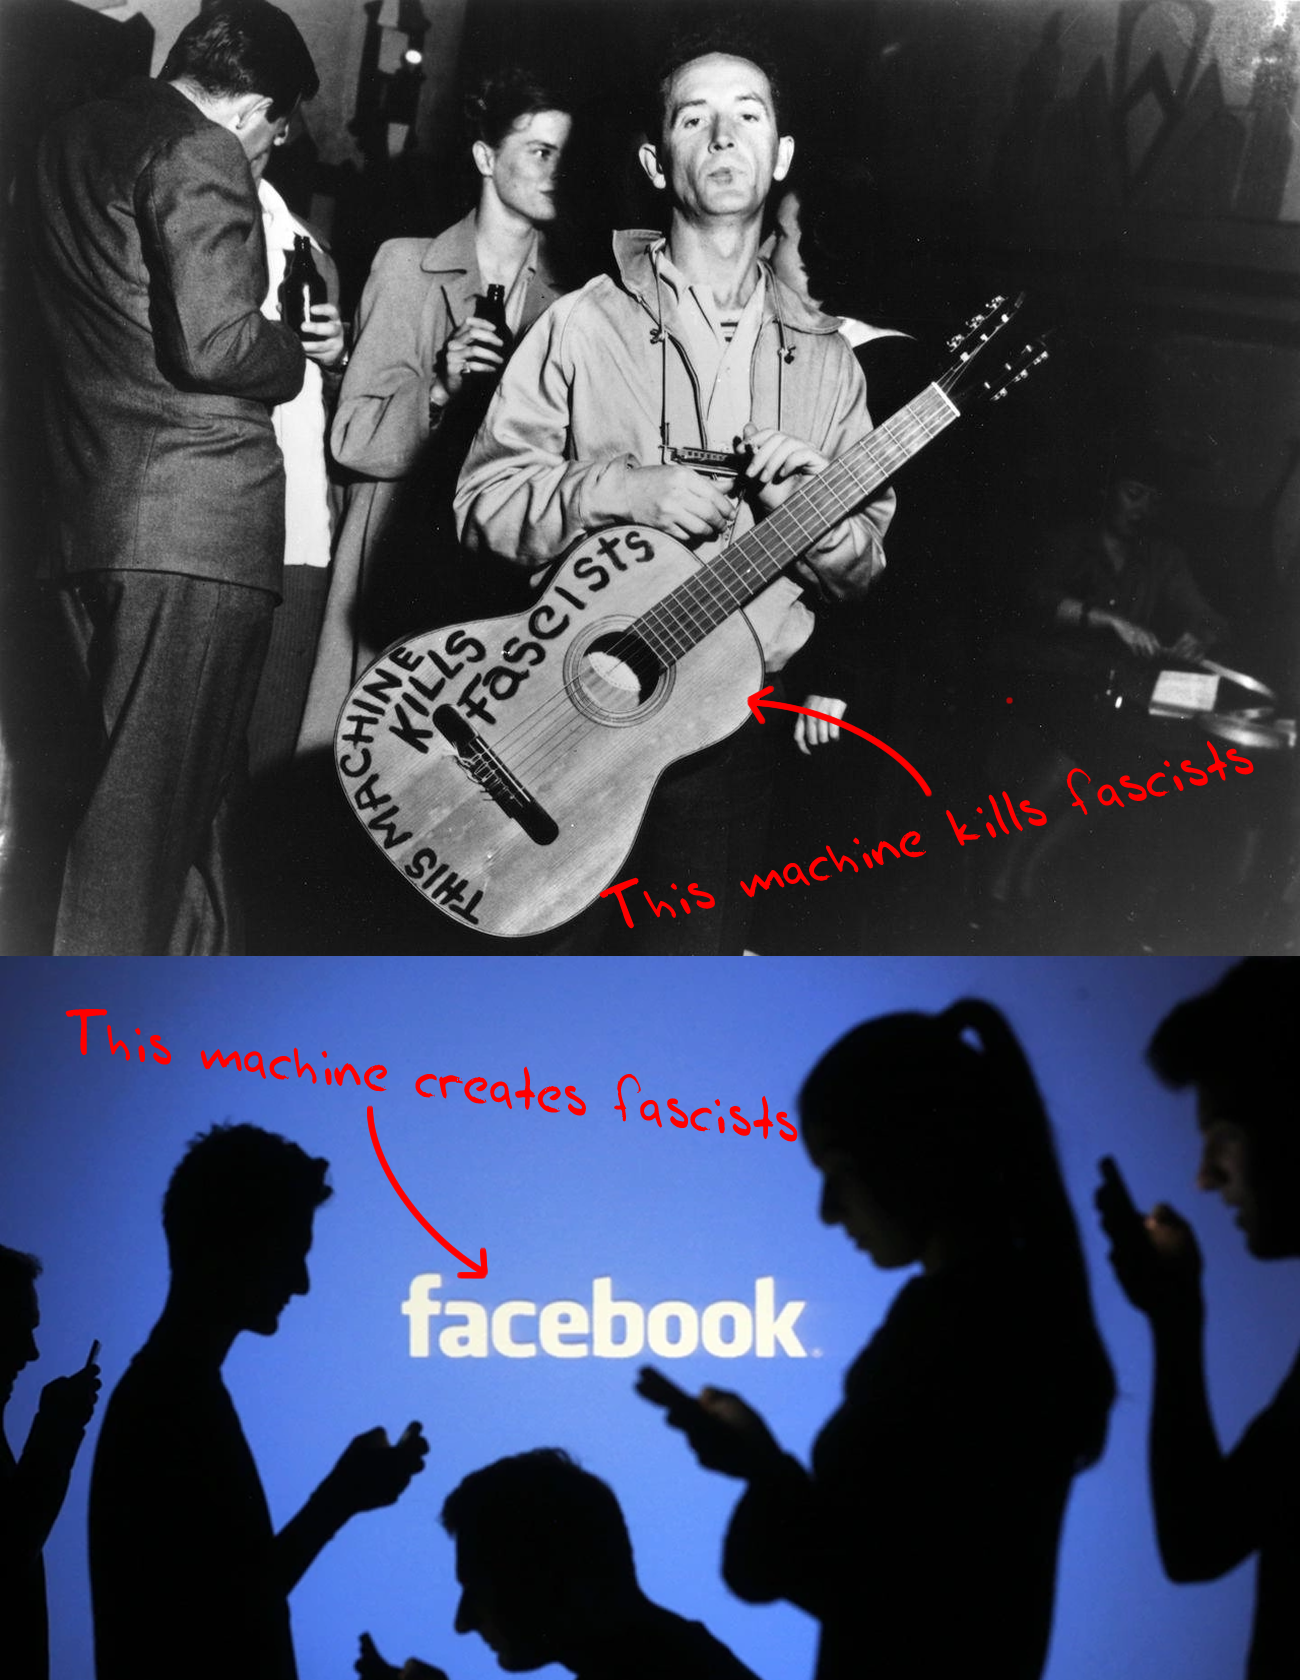 "On top: Woody Guthry holding his guitar with a note saying ""This machine kills fascists"". On the bottom: a Facebook logo with a note saying ""This machine creates fascists""."